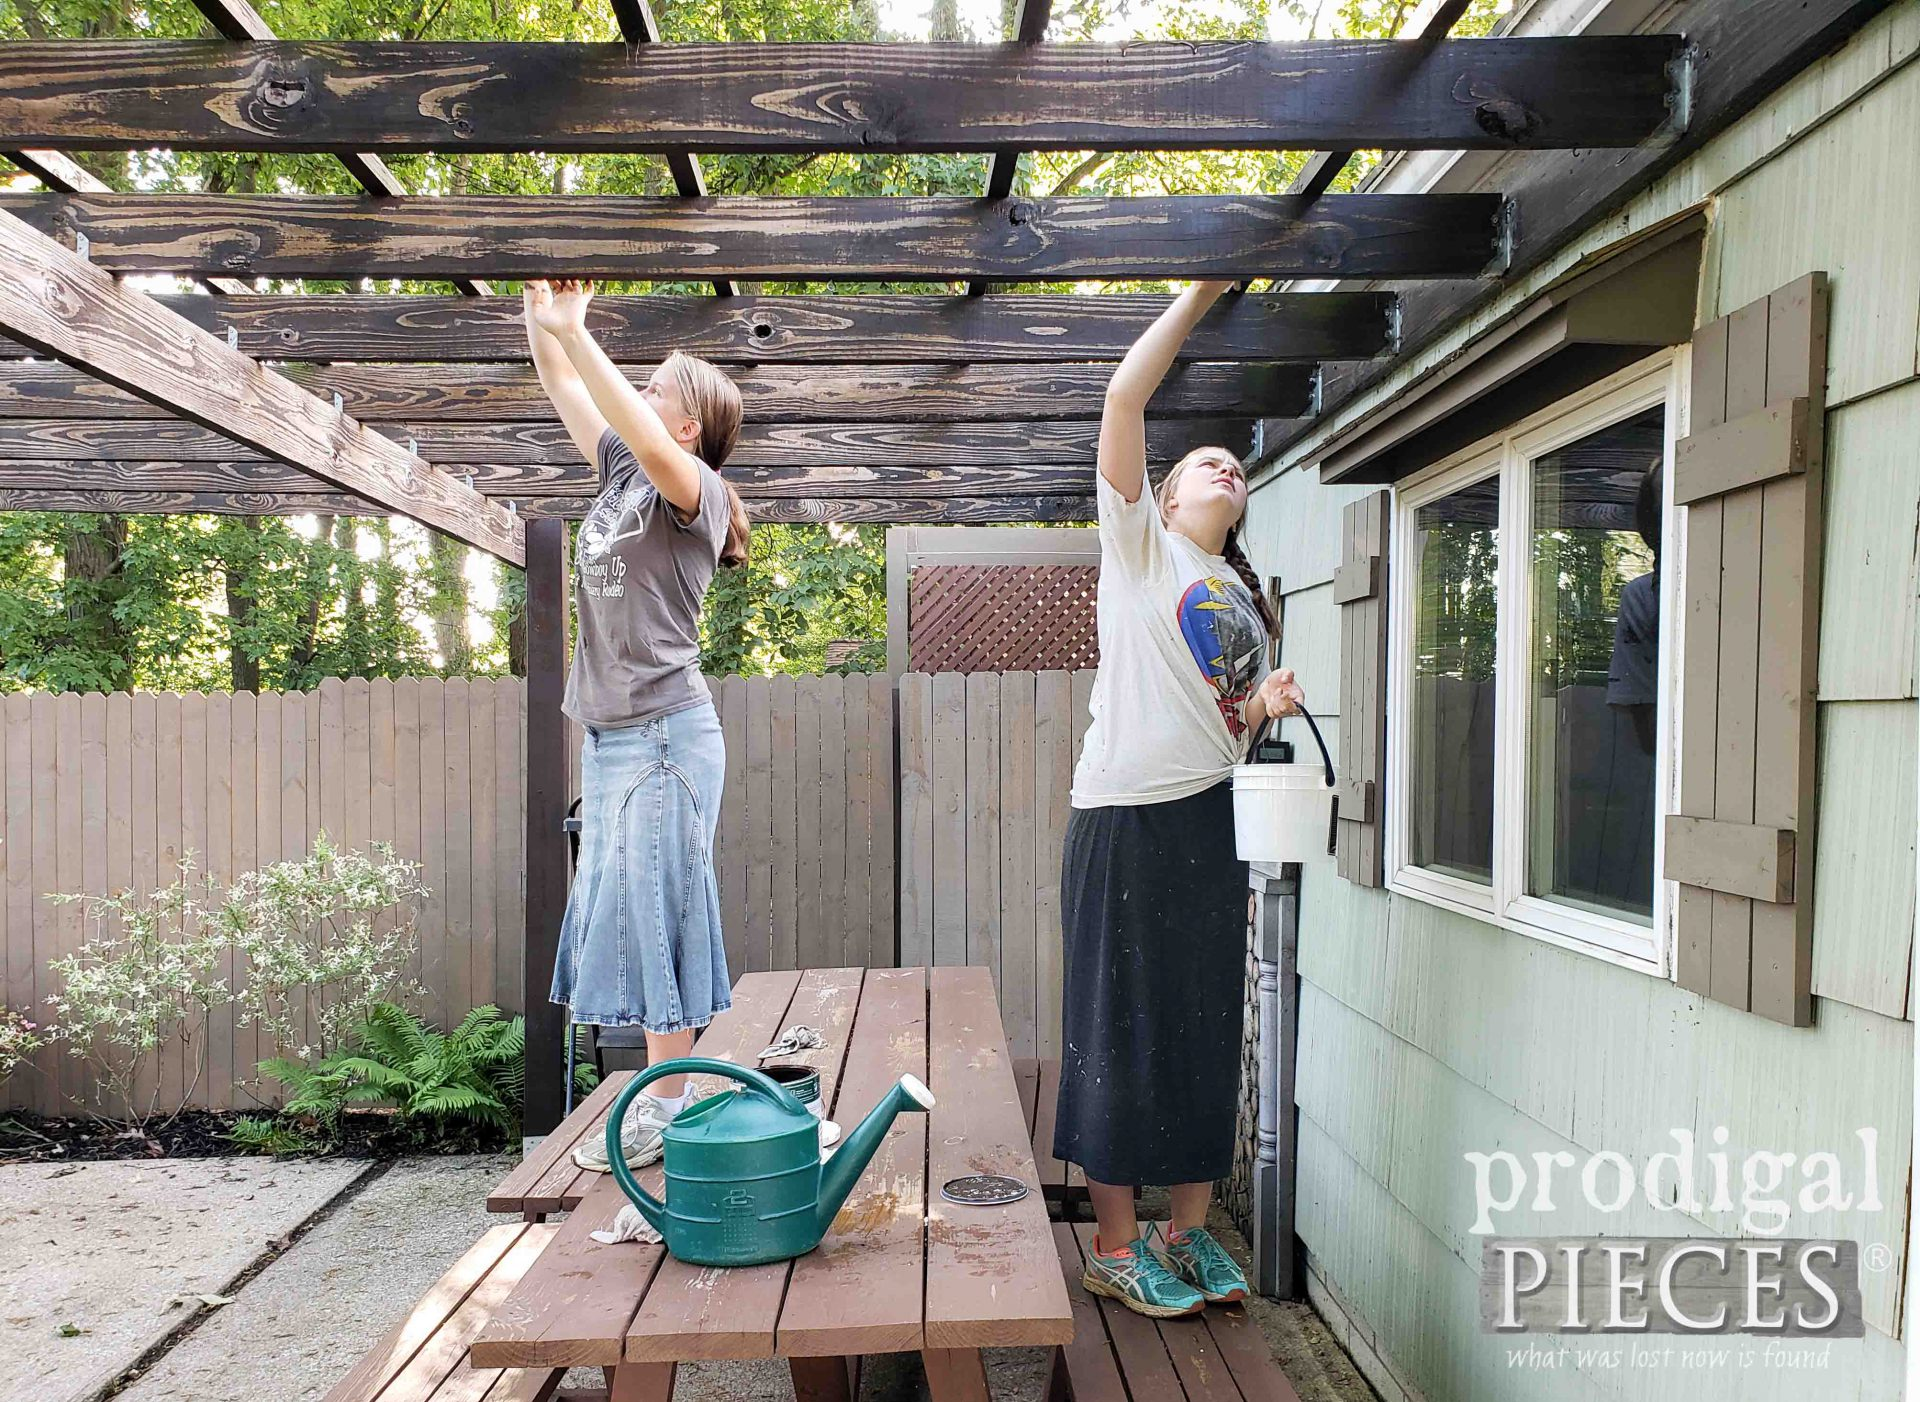 Teens Helping Stain DIY Patio & Pergola for Update | Prodigal Pieces | prodigalpieces.com #prodigalpieces